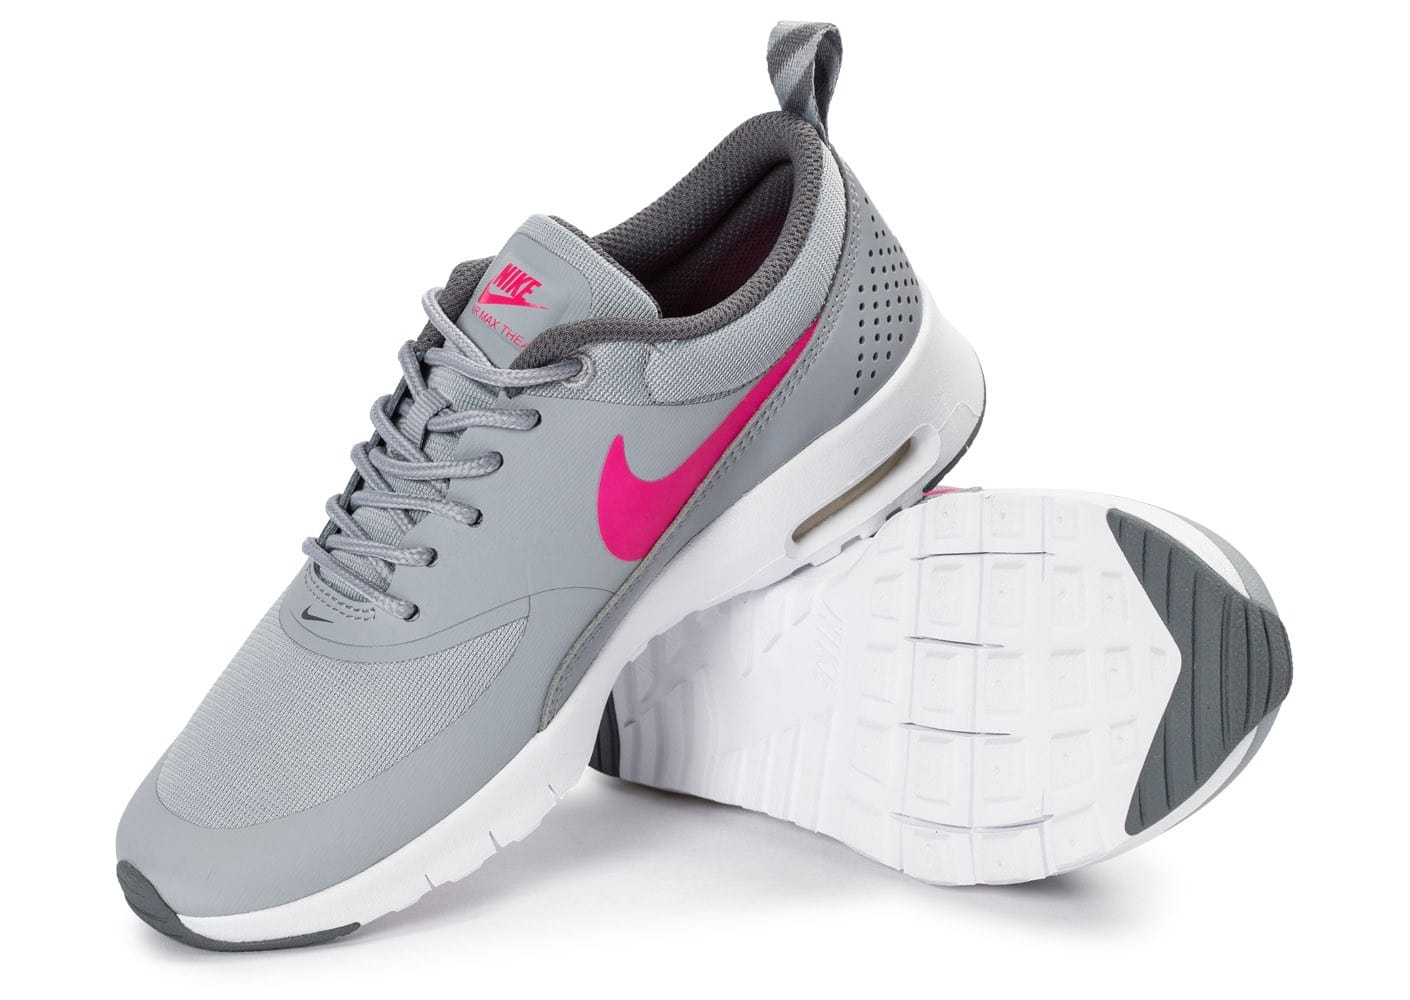 nike air max thea junior grise et rose chaussures toutes les baskets sold es chausport. Black Bedroom Furniture Sets. Home Design Ideas